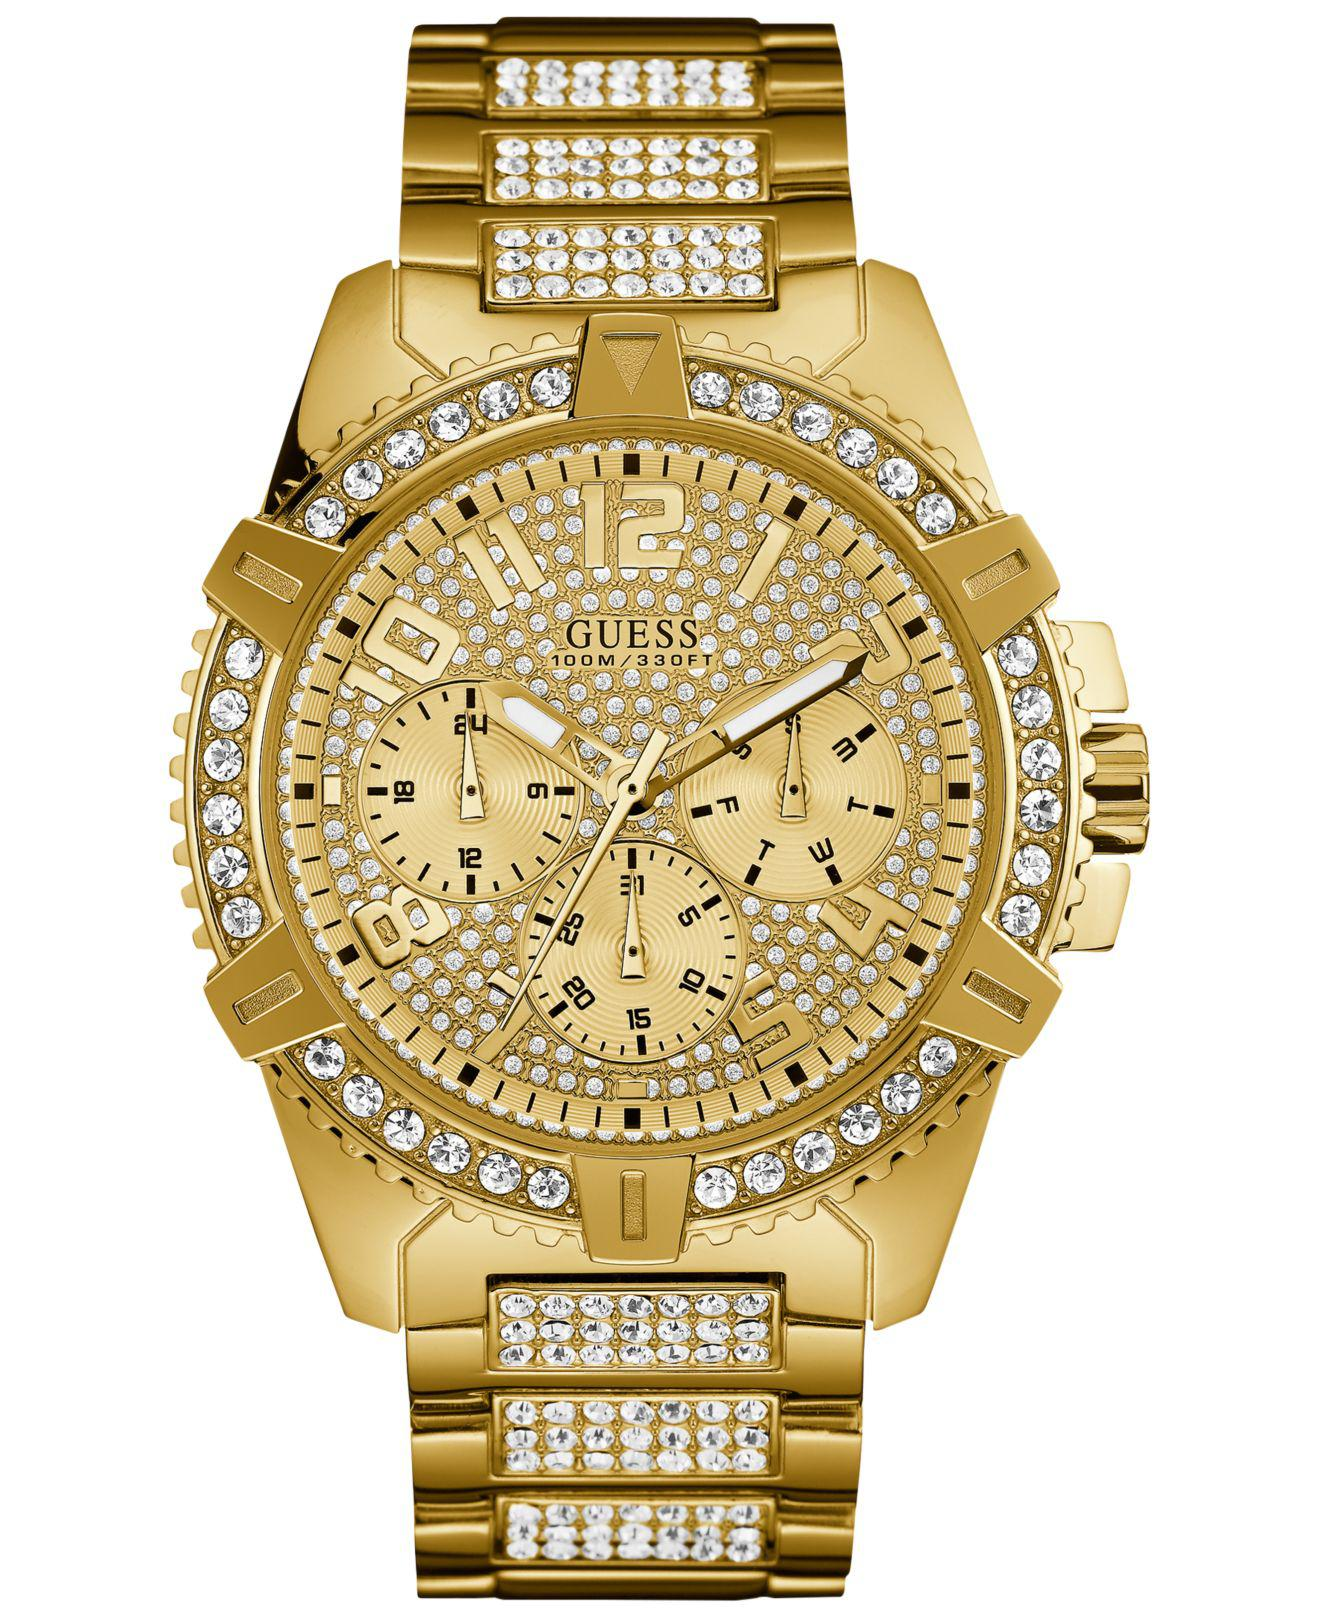 s seiko watches women gold swarovski bracelet buyseiko pdp main strap at crystal online watch johnlewis white rose rsp